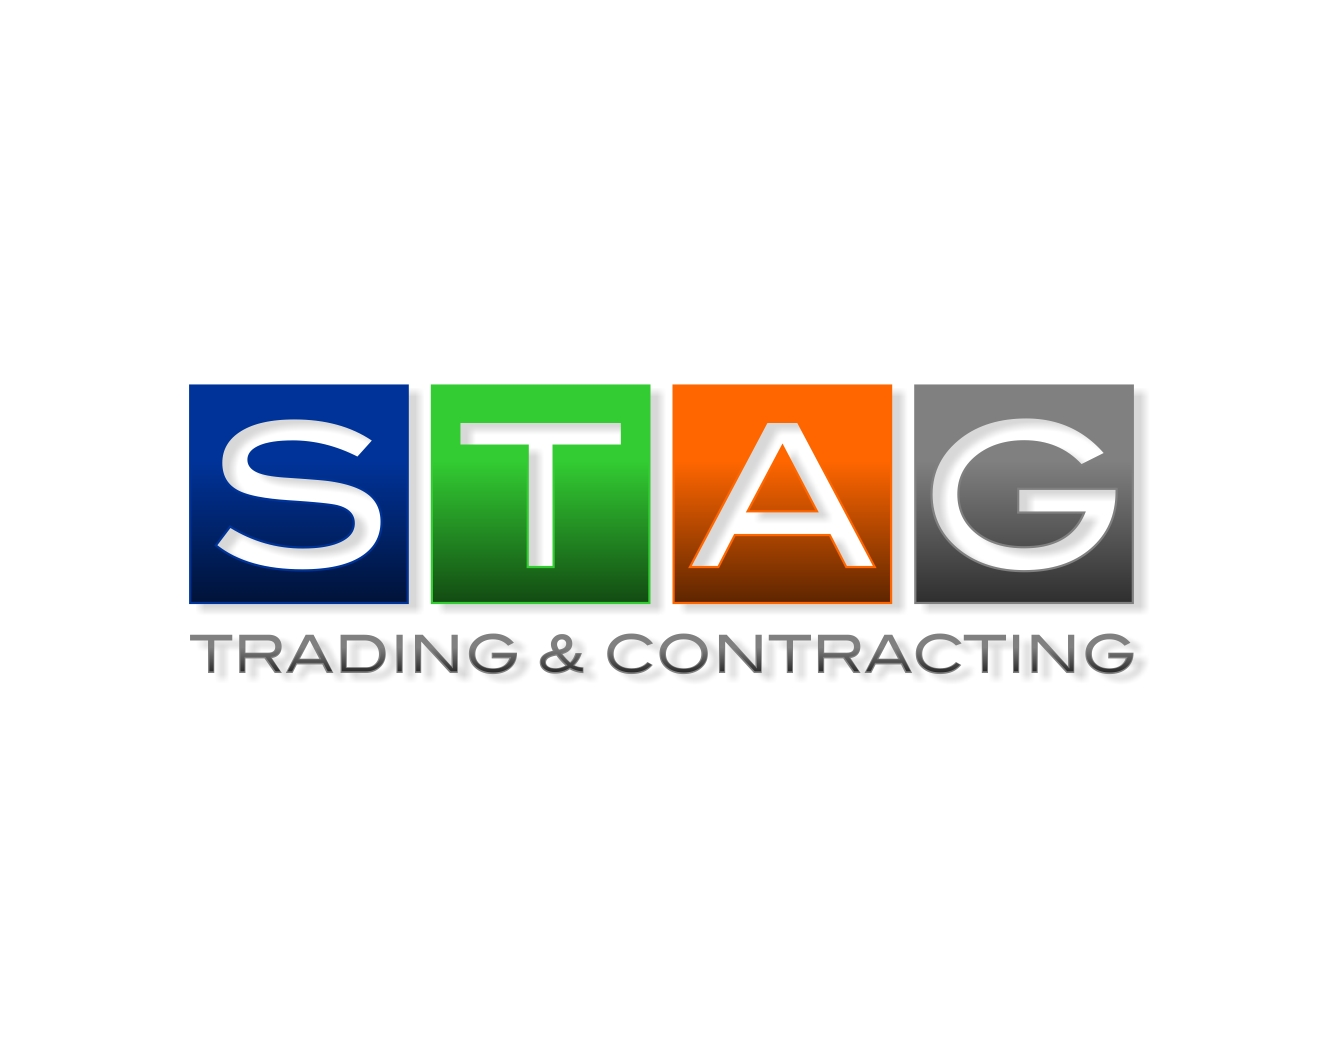 Logo Design by Rares.Andrei - Entry No. 37 in the Logo Design Contest Captivating Logo Design for STAG Trading & Contracting.